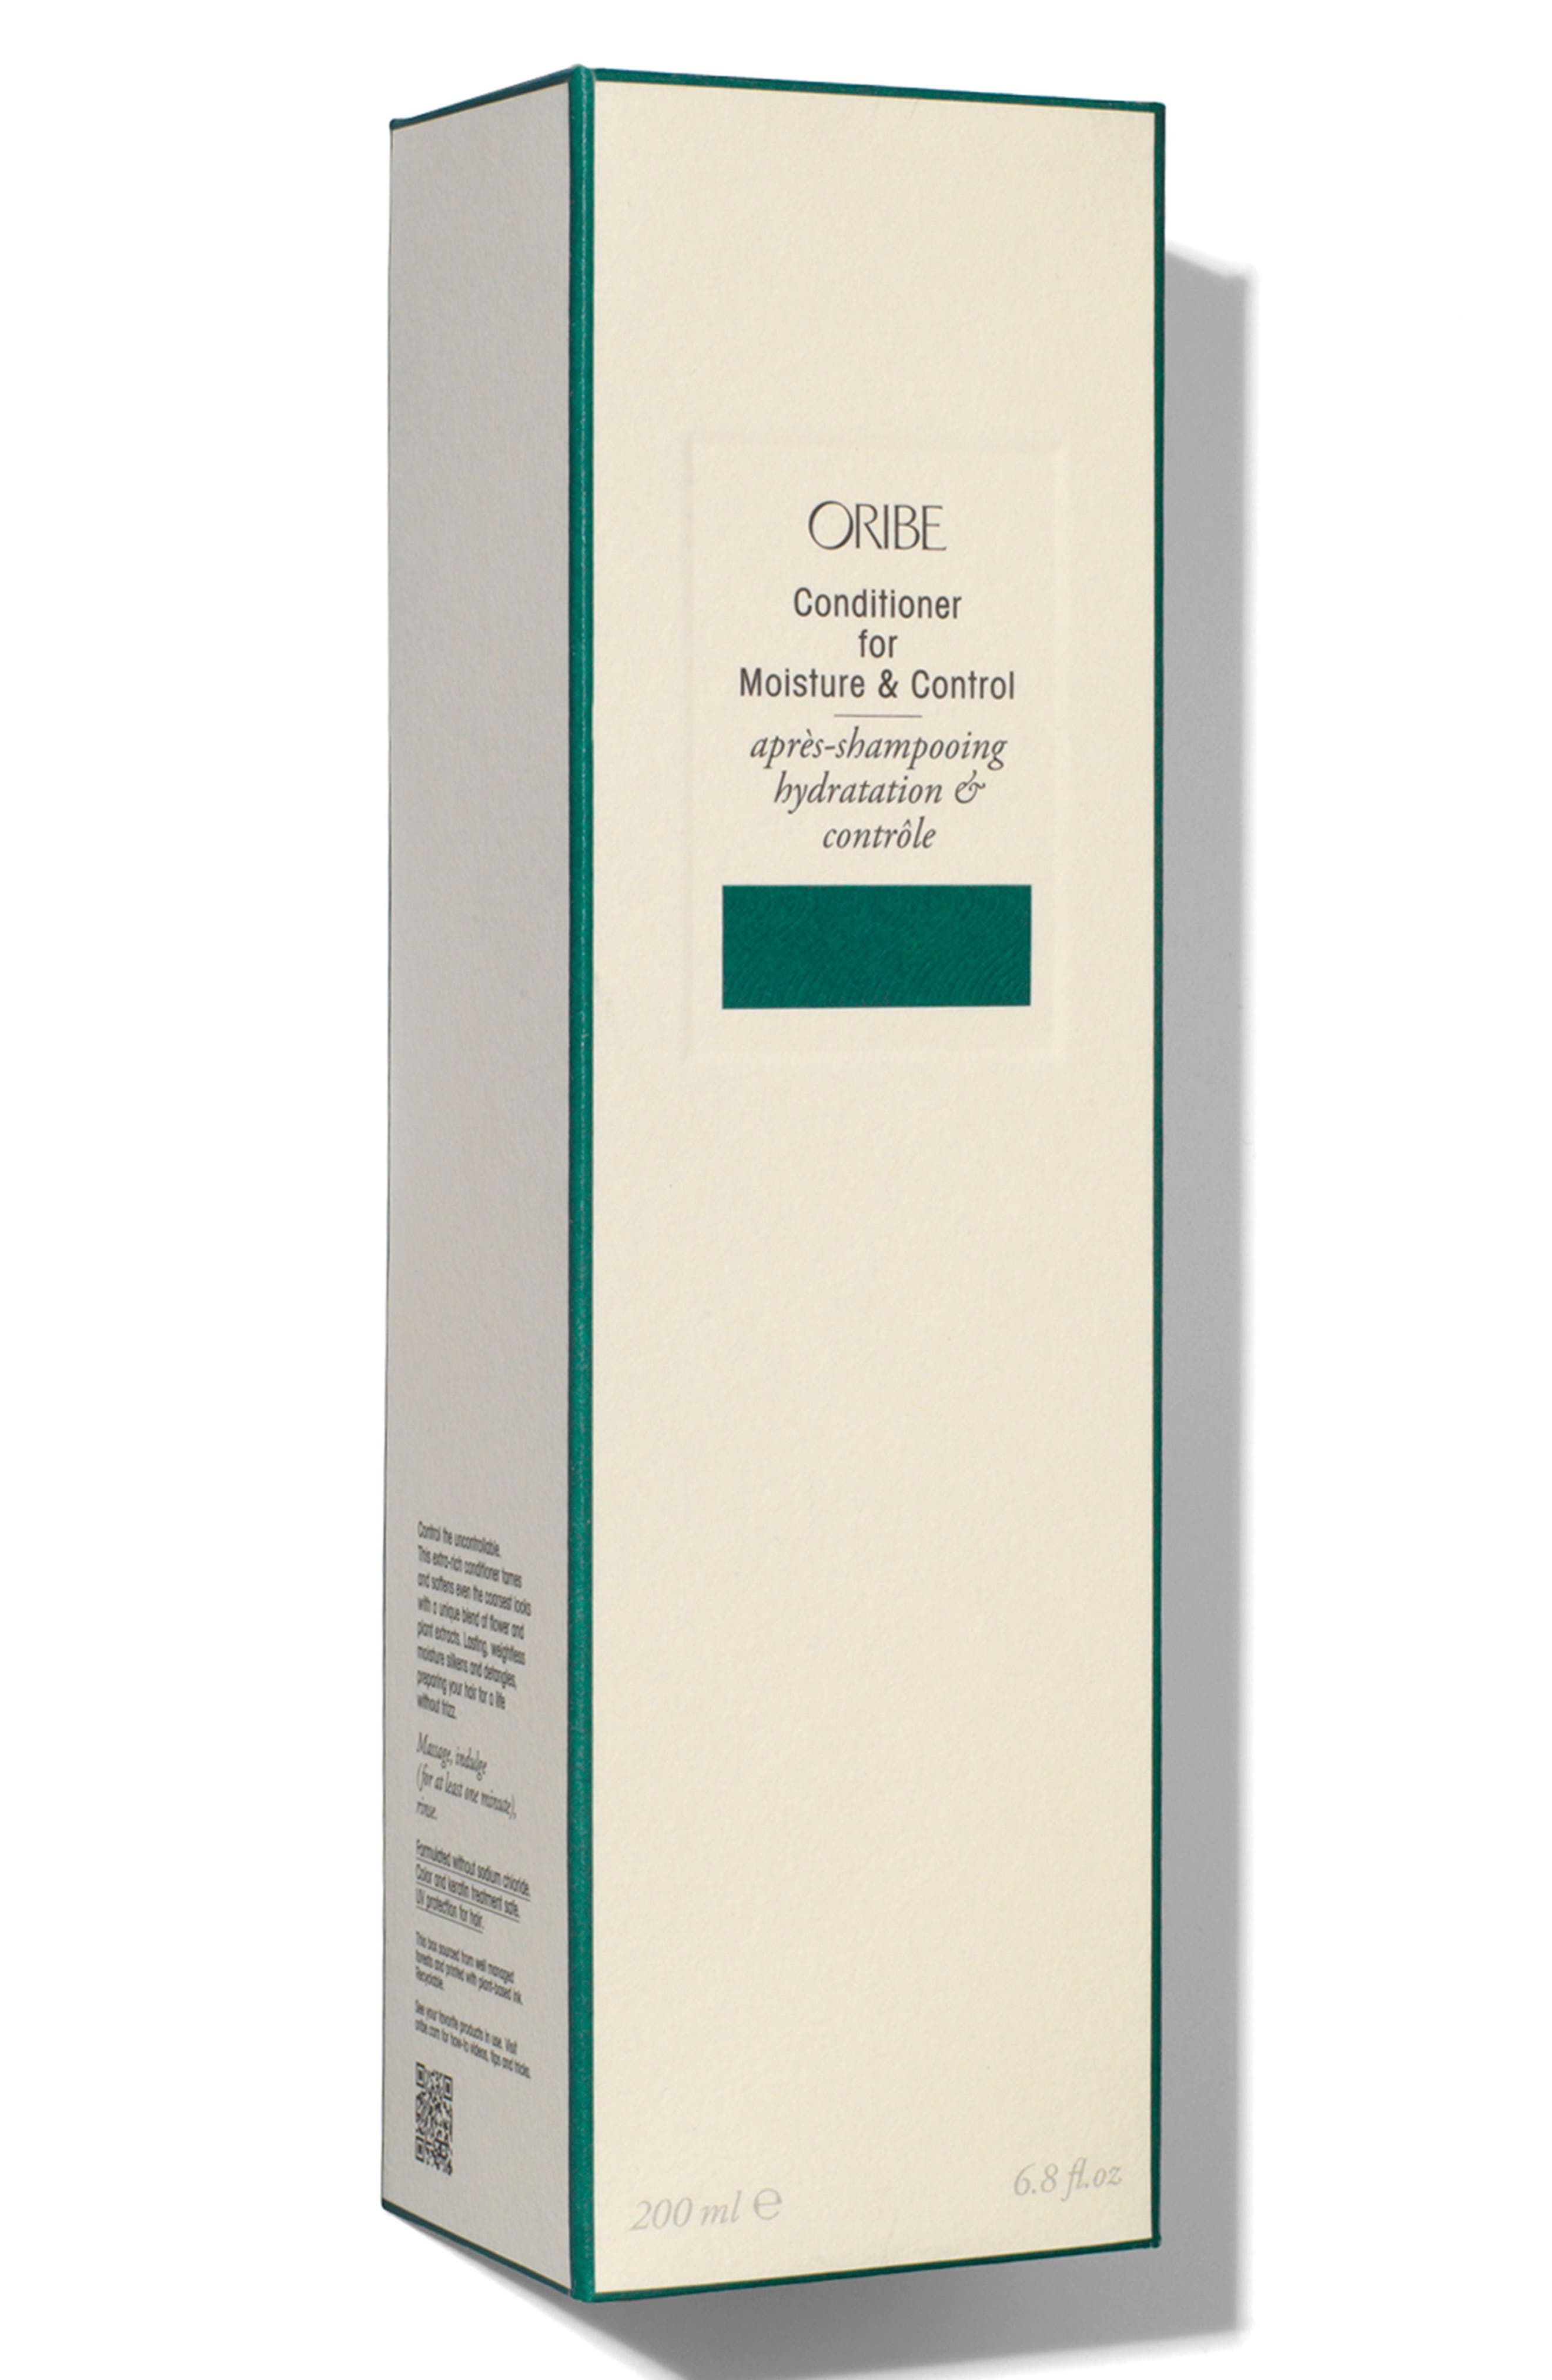 ORIBE, SPACE.NK.apothecary Oribe Conditioner for Moisture Control, Alternate thumbnail 2, color, 000